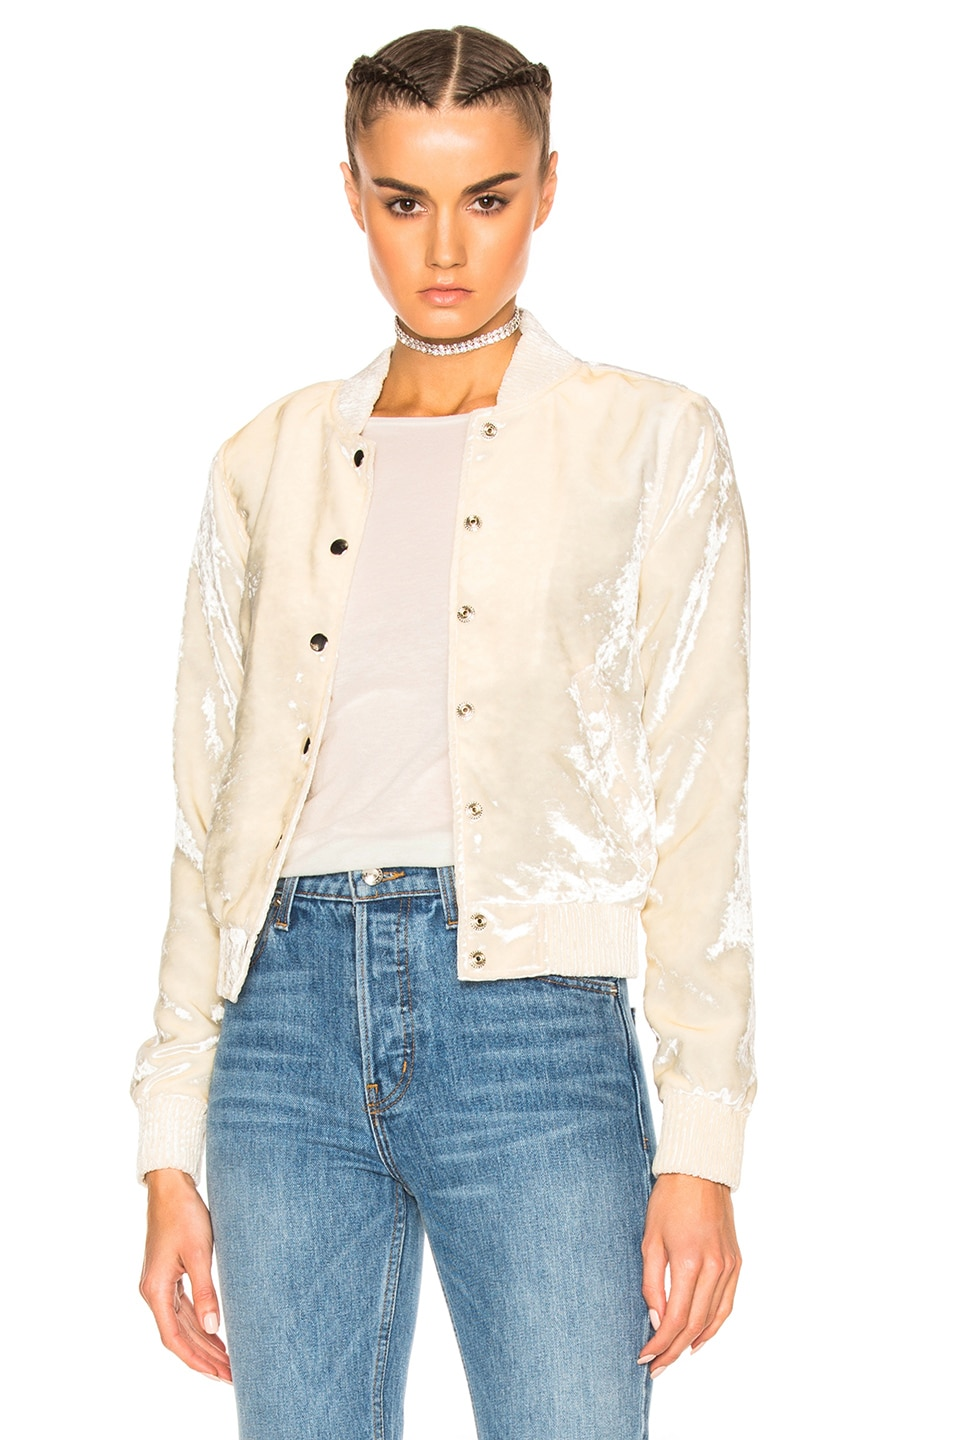 Image 1 of ThePerfext for FWRD Ashley Bomber Jacket in White